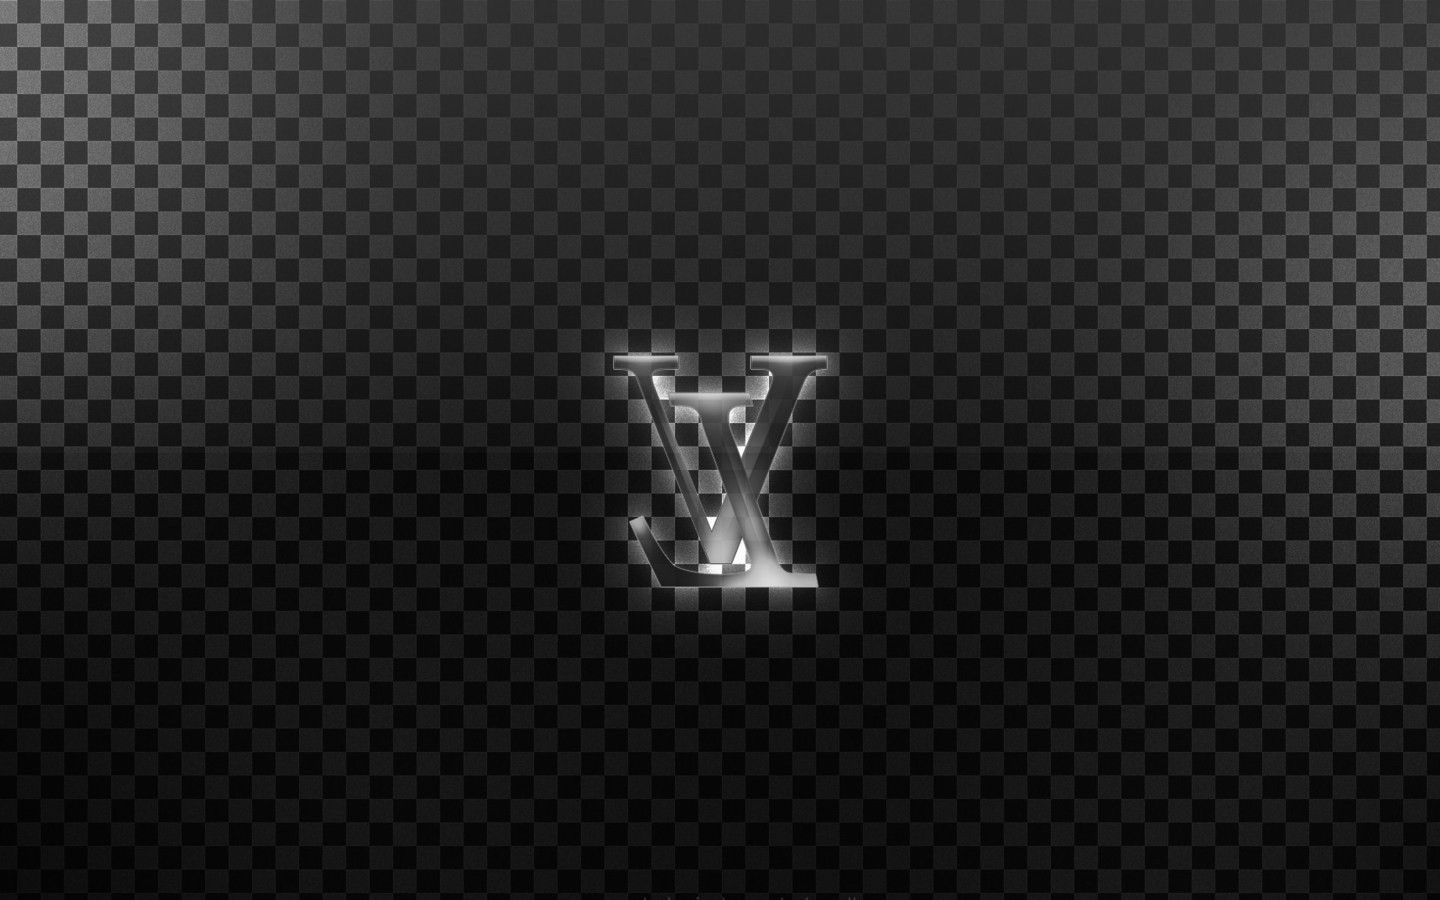 Iphone 7 Hd Wallpapers 1080p Louis Vuitton Hd Wallpapers Group 61